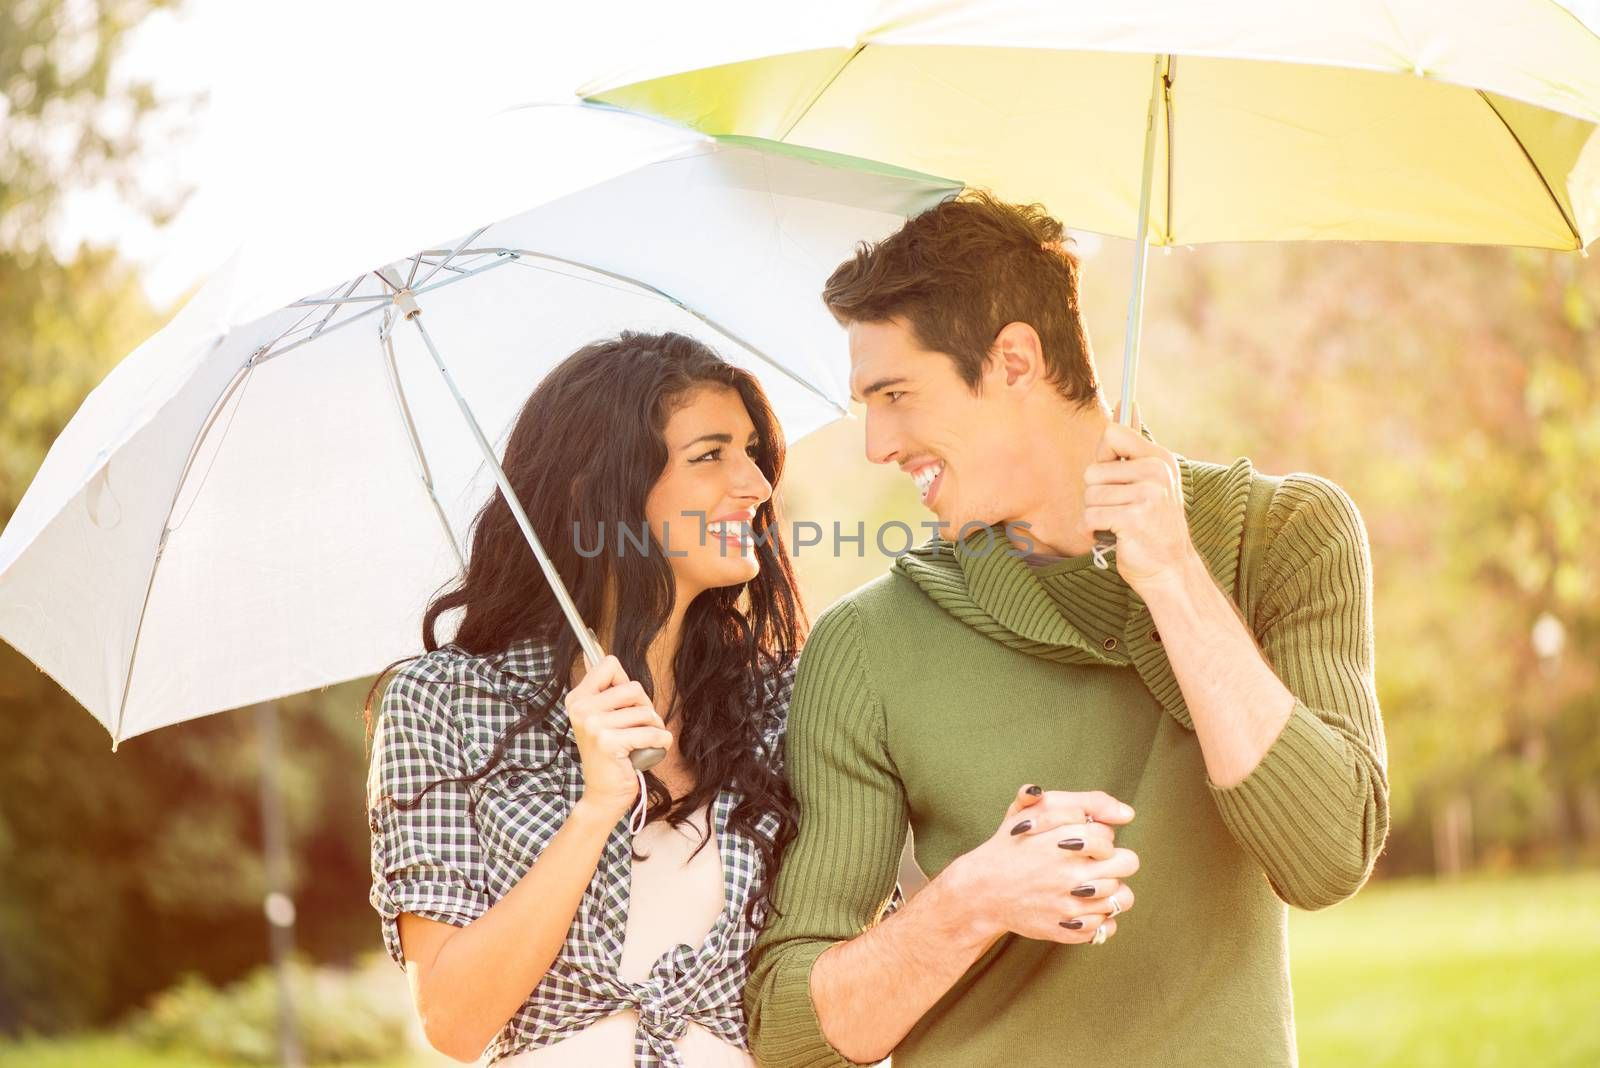 Young heterosexual couple walking in park holding hands and carrying umbrellas.